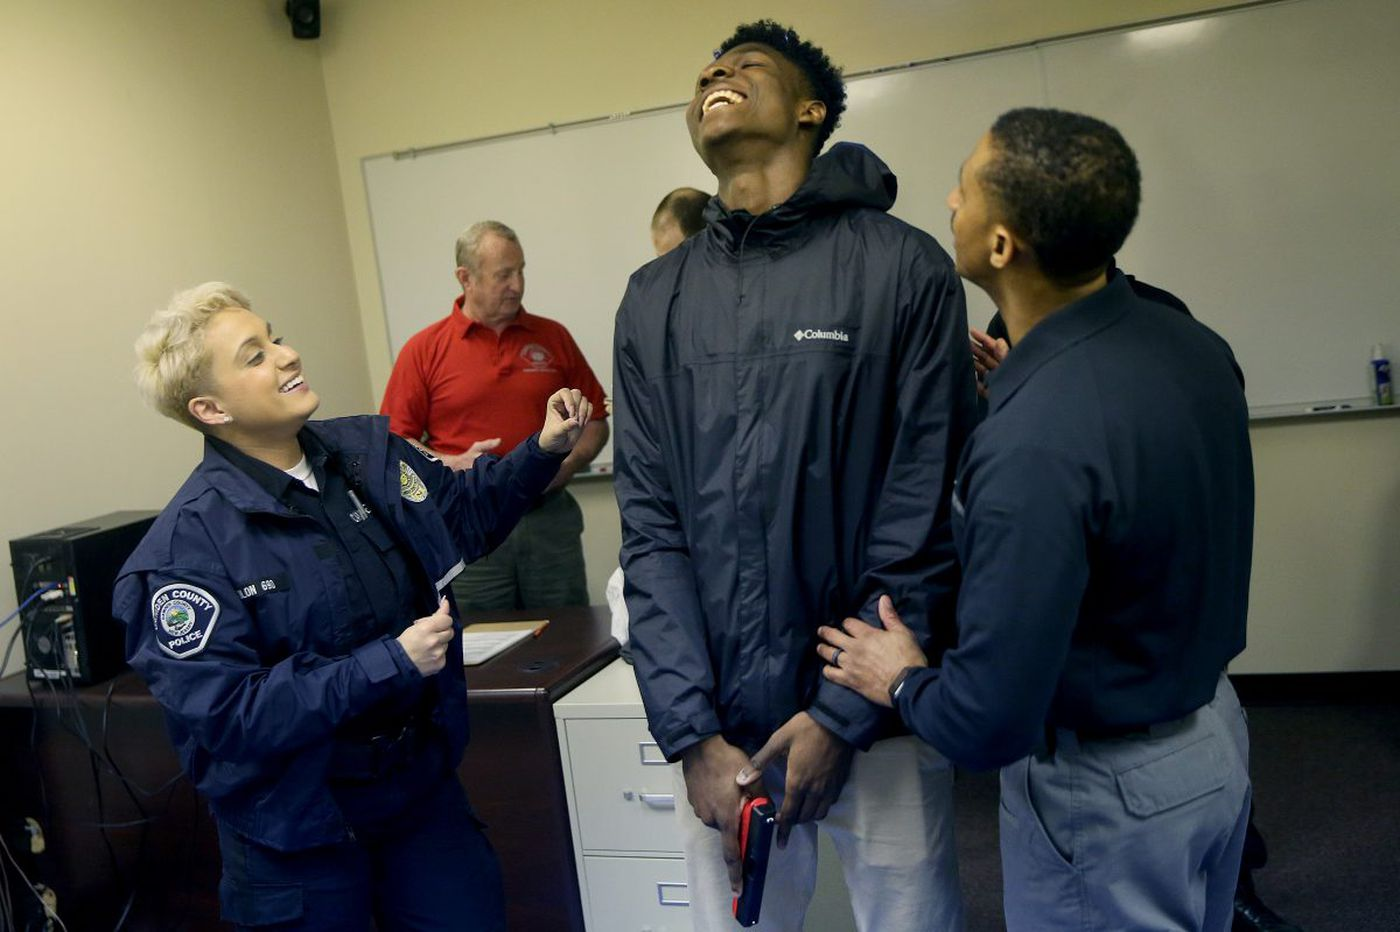 Camden youth get recruit training to break down barriers with police